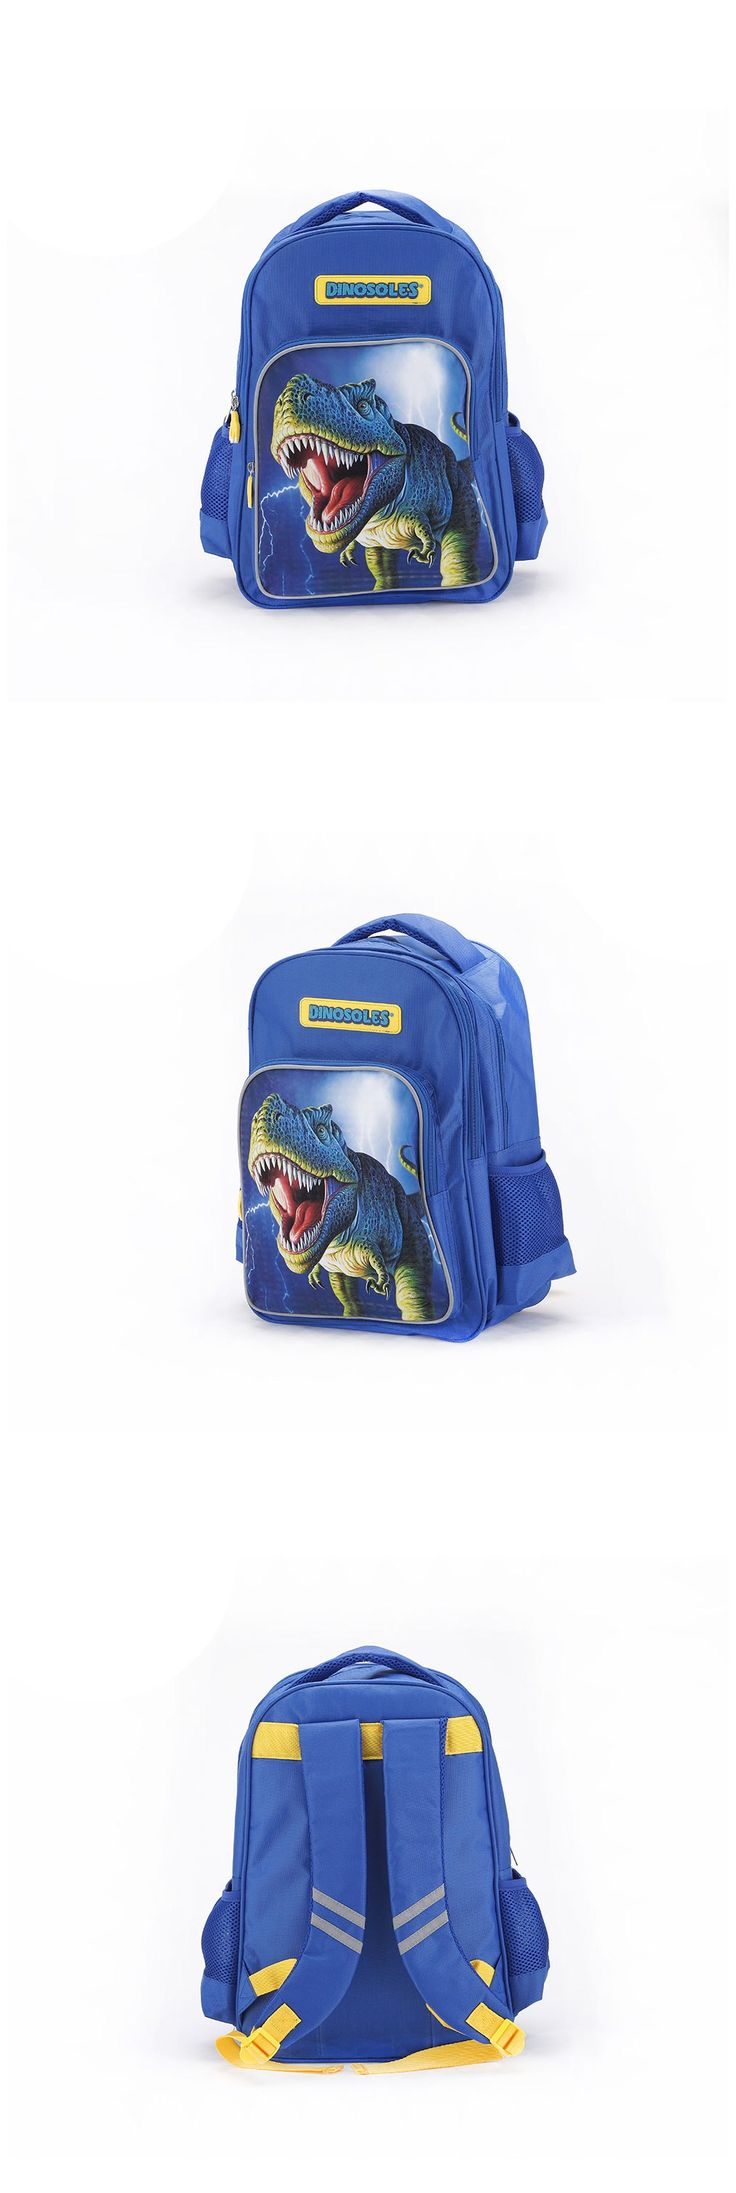 Active recommendation for boys. Dinosoles boys school bag with charismatic and great dinosaur themed. come on~ #Dinosoles #DinosaurBackpack #BoyBackpack #BoyBag